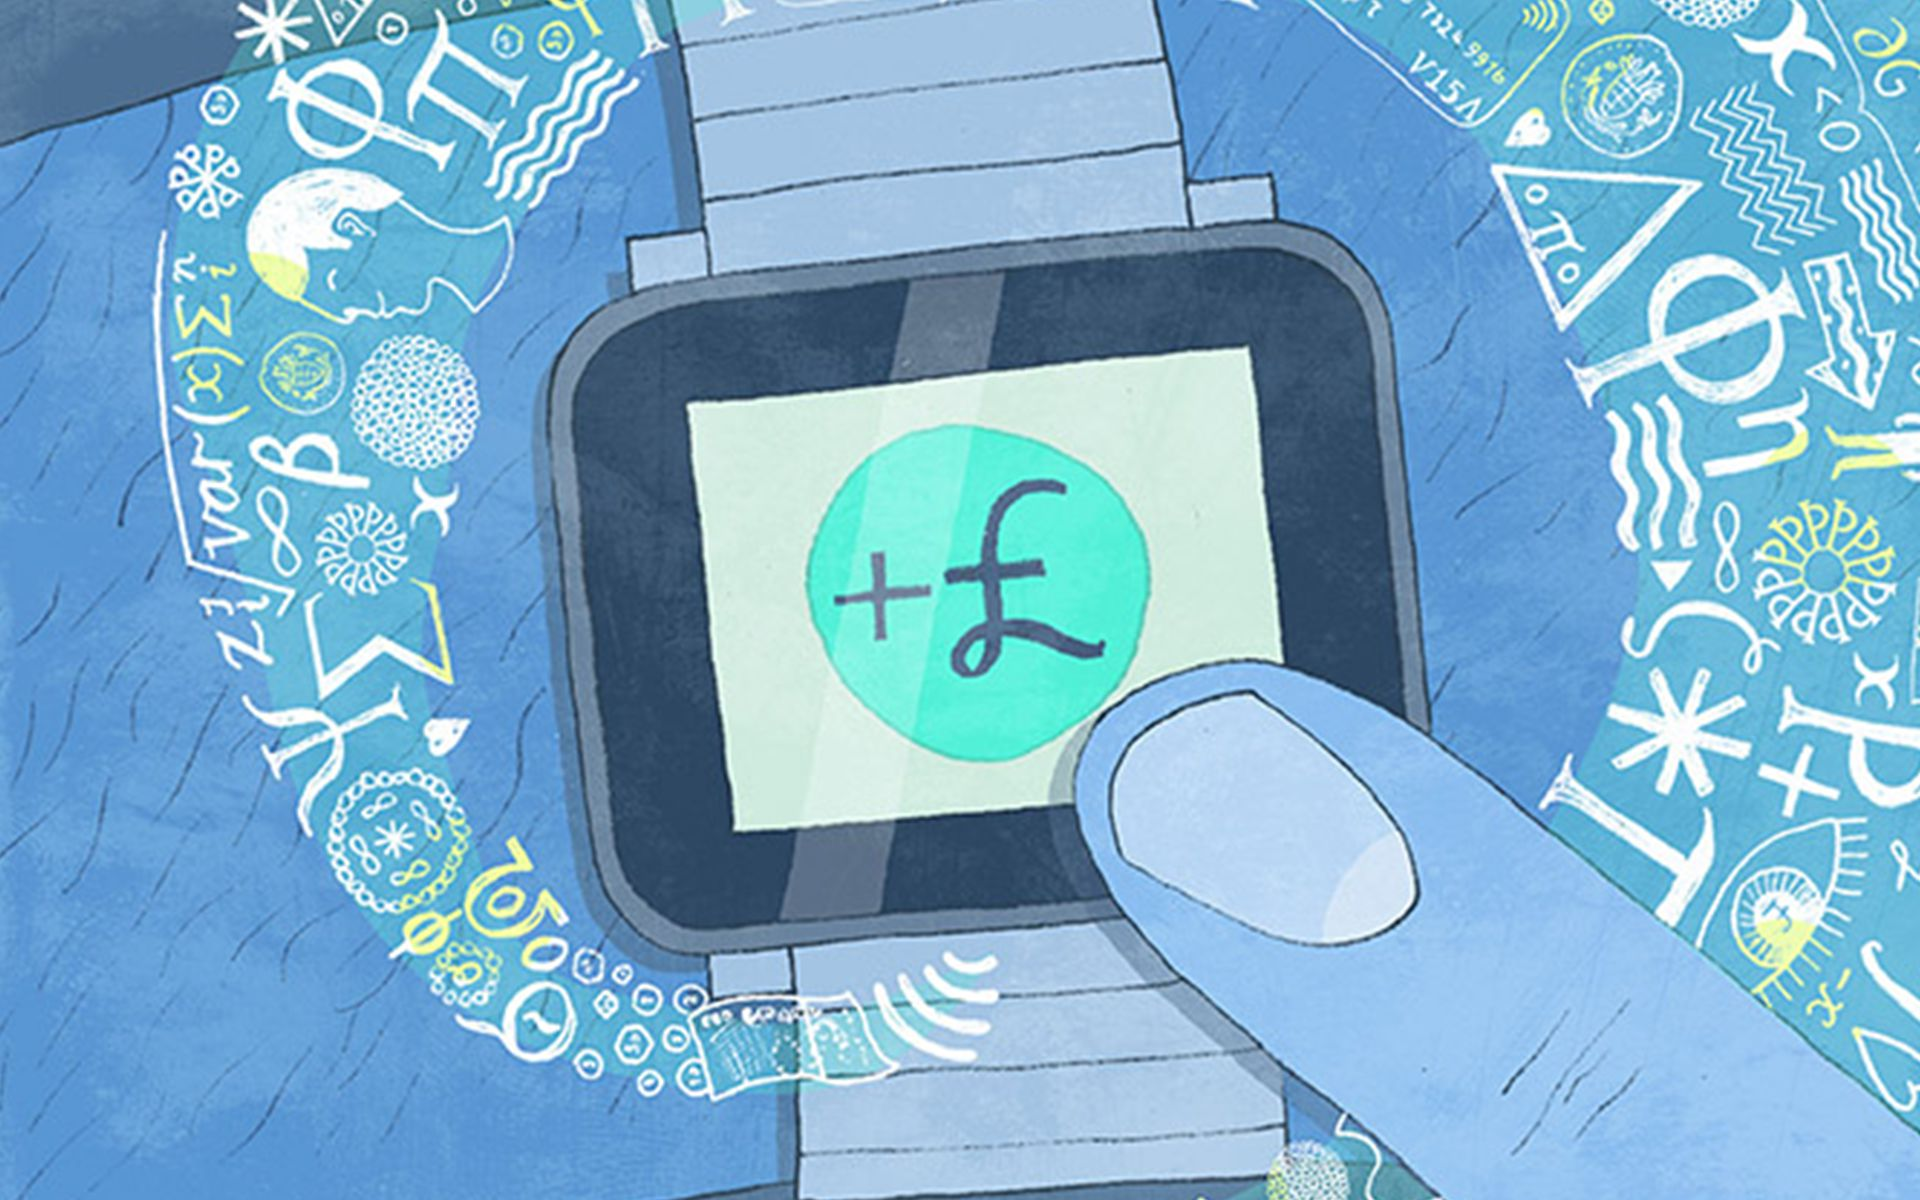 Smart watch illustration